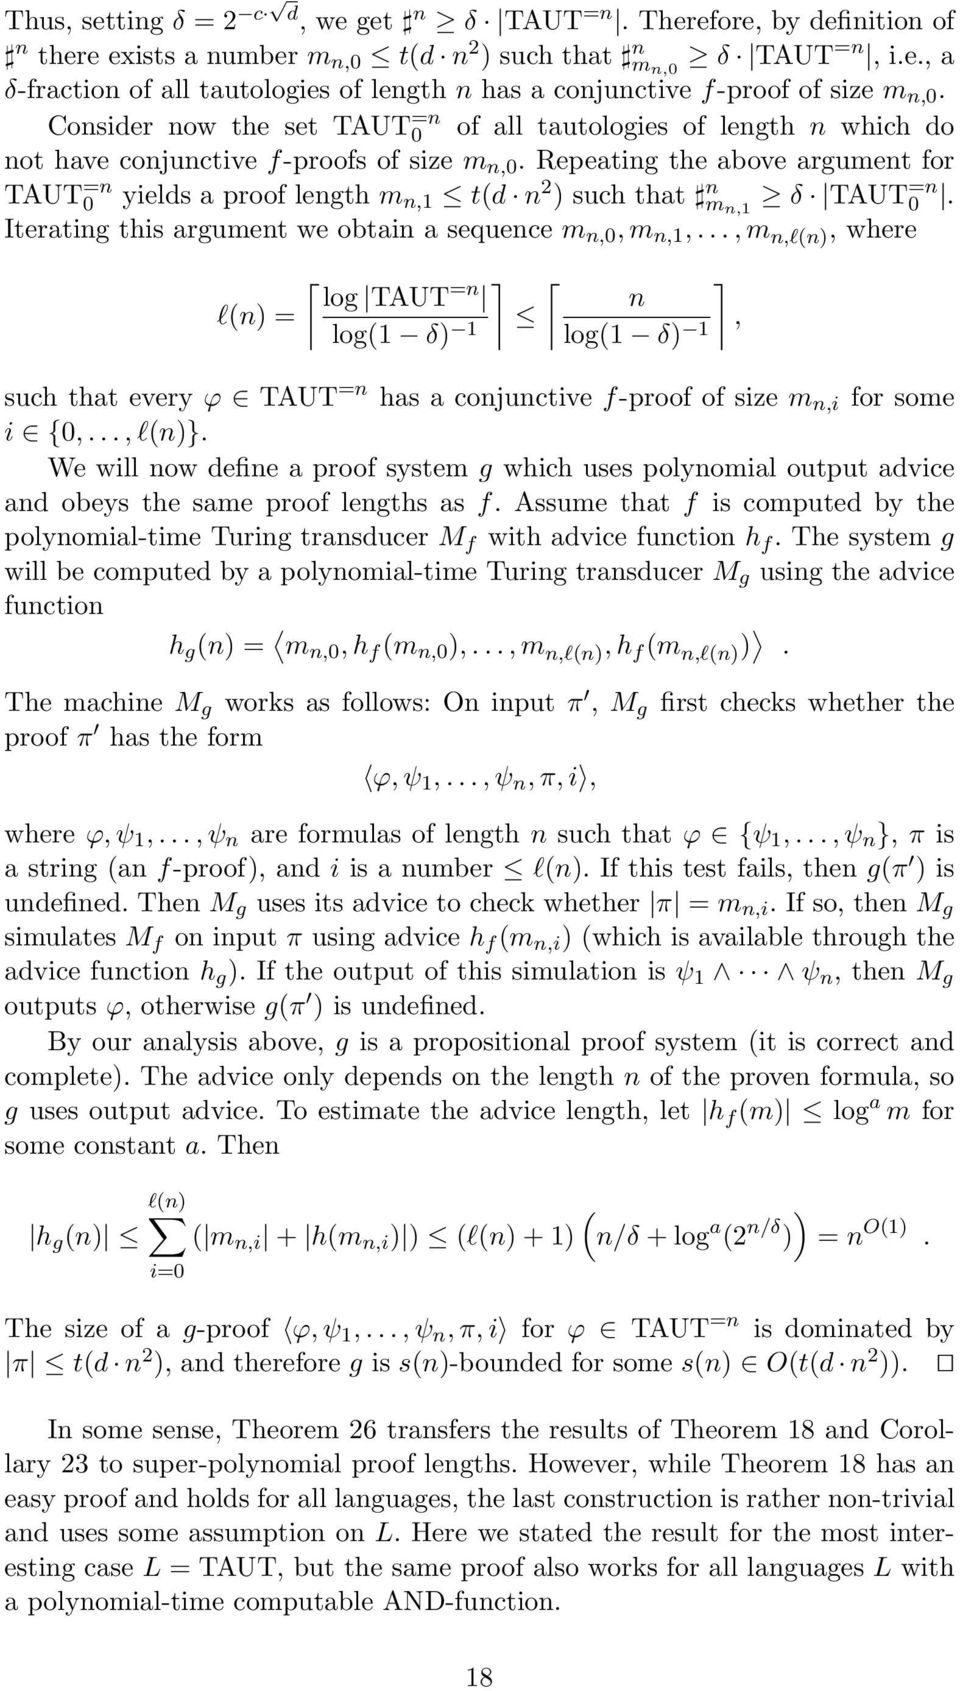 Repeating the above argument for TAUT =n 0 yields a proof length m n,1 t(d n 2 ) such that n m n,1 δ TAUT =n 0. Iterating this argument we obtain a sequence m n,0, m n,1,.